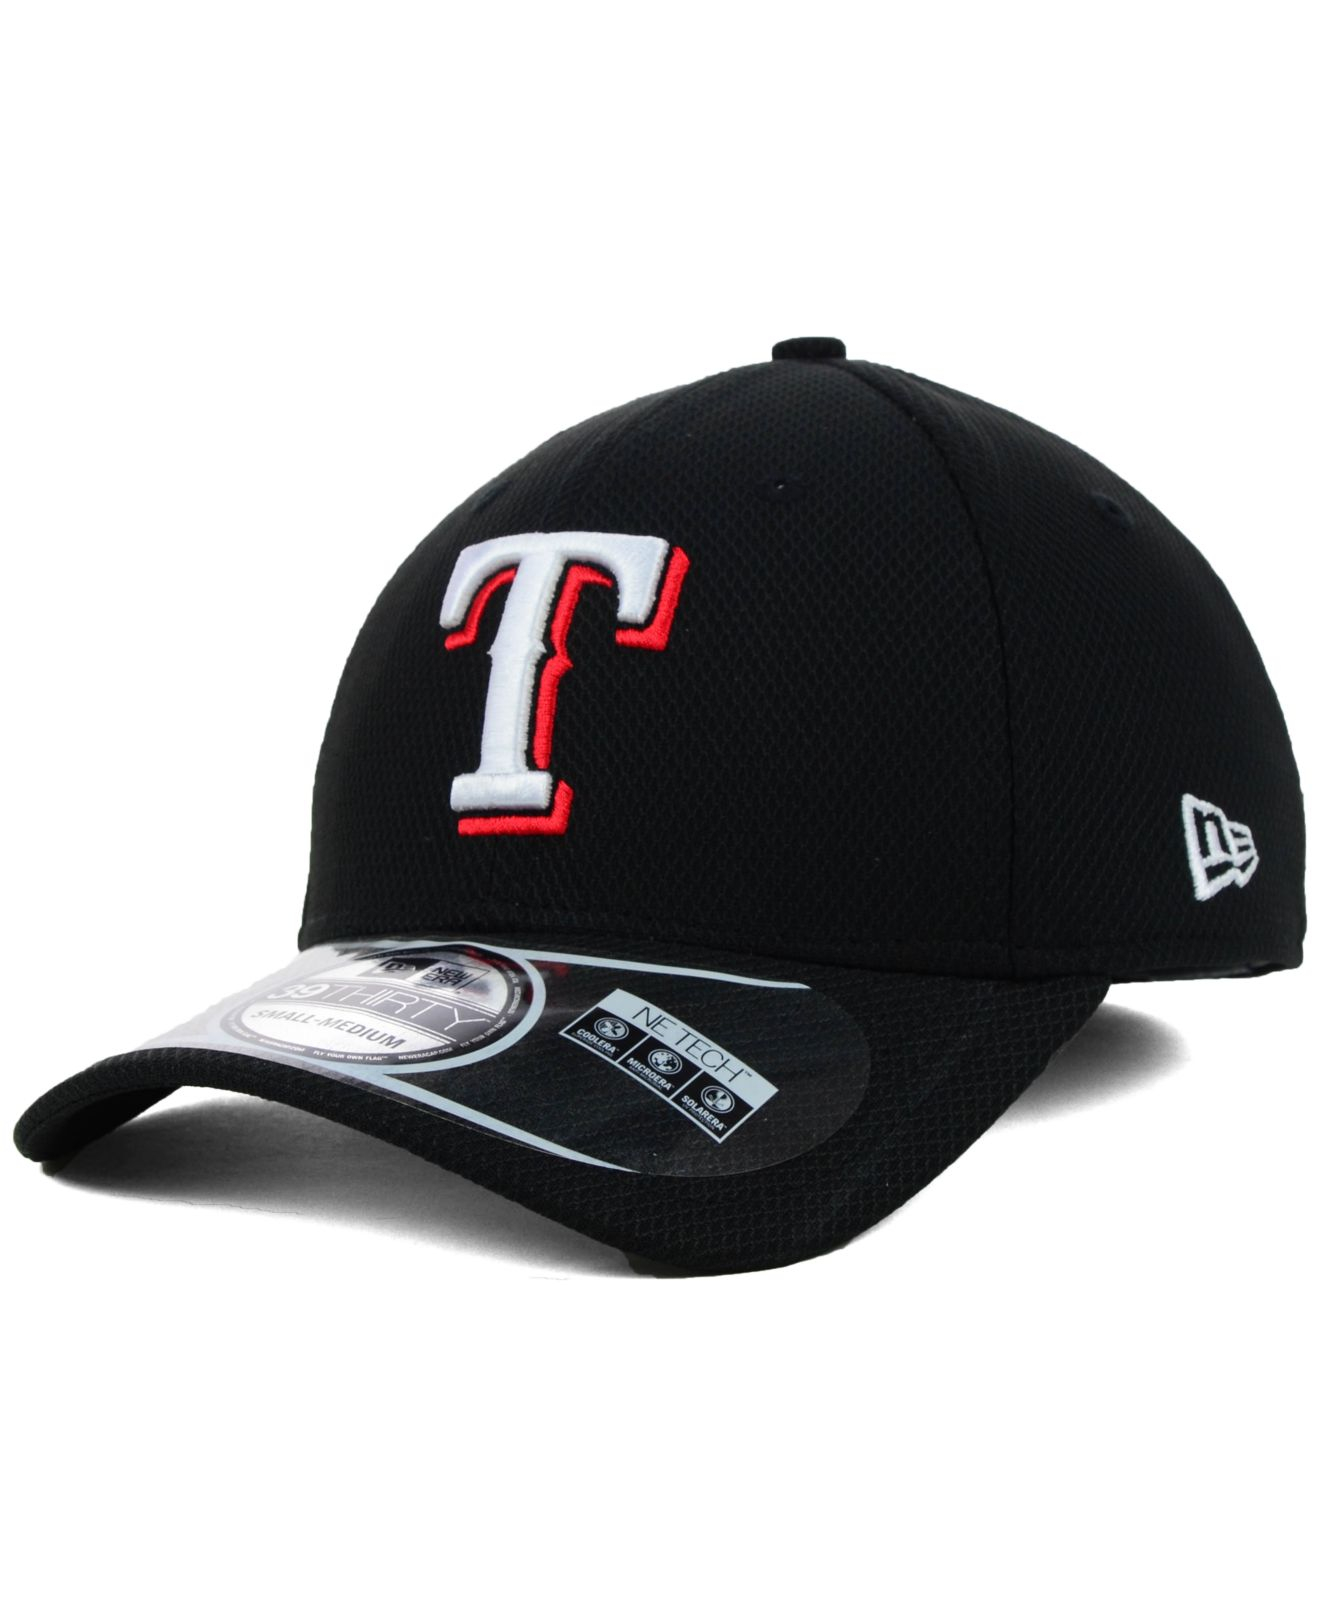 Lyst - KTZ Texas Rangers Mlb Diamond Era Black 39Thirty Cap in Black ... cf8f66aa474b